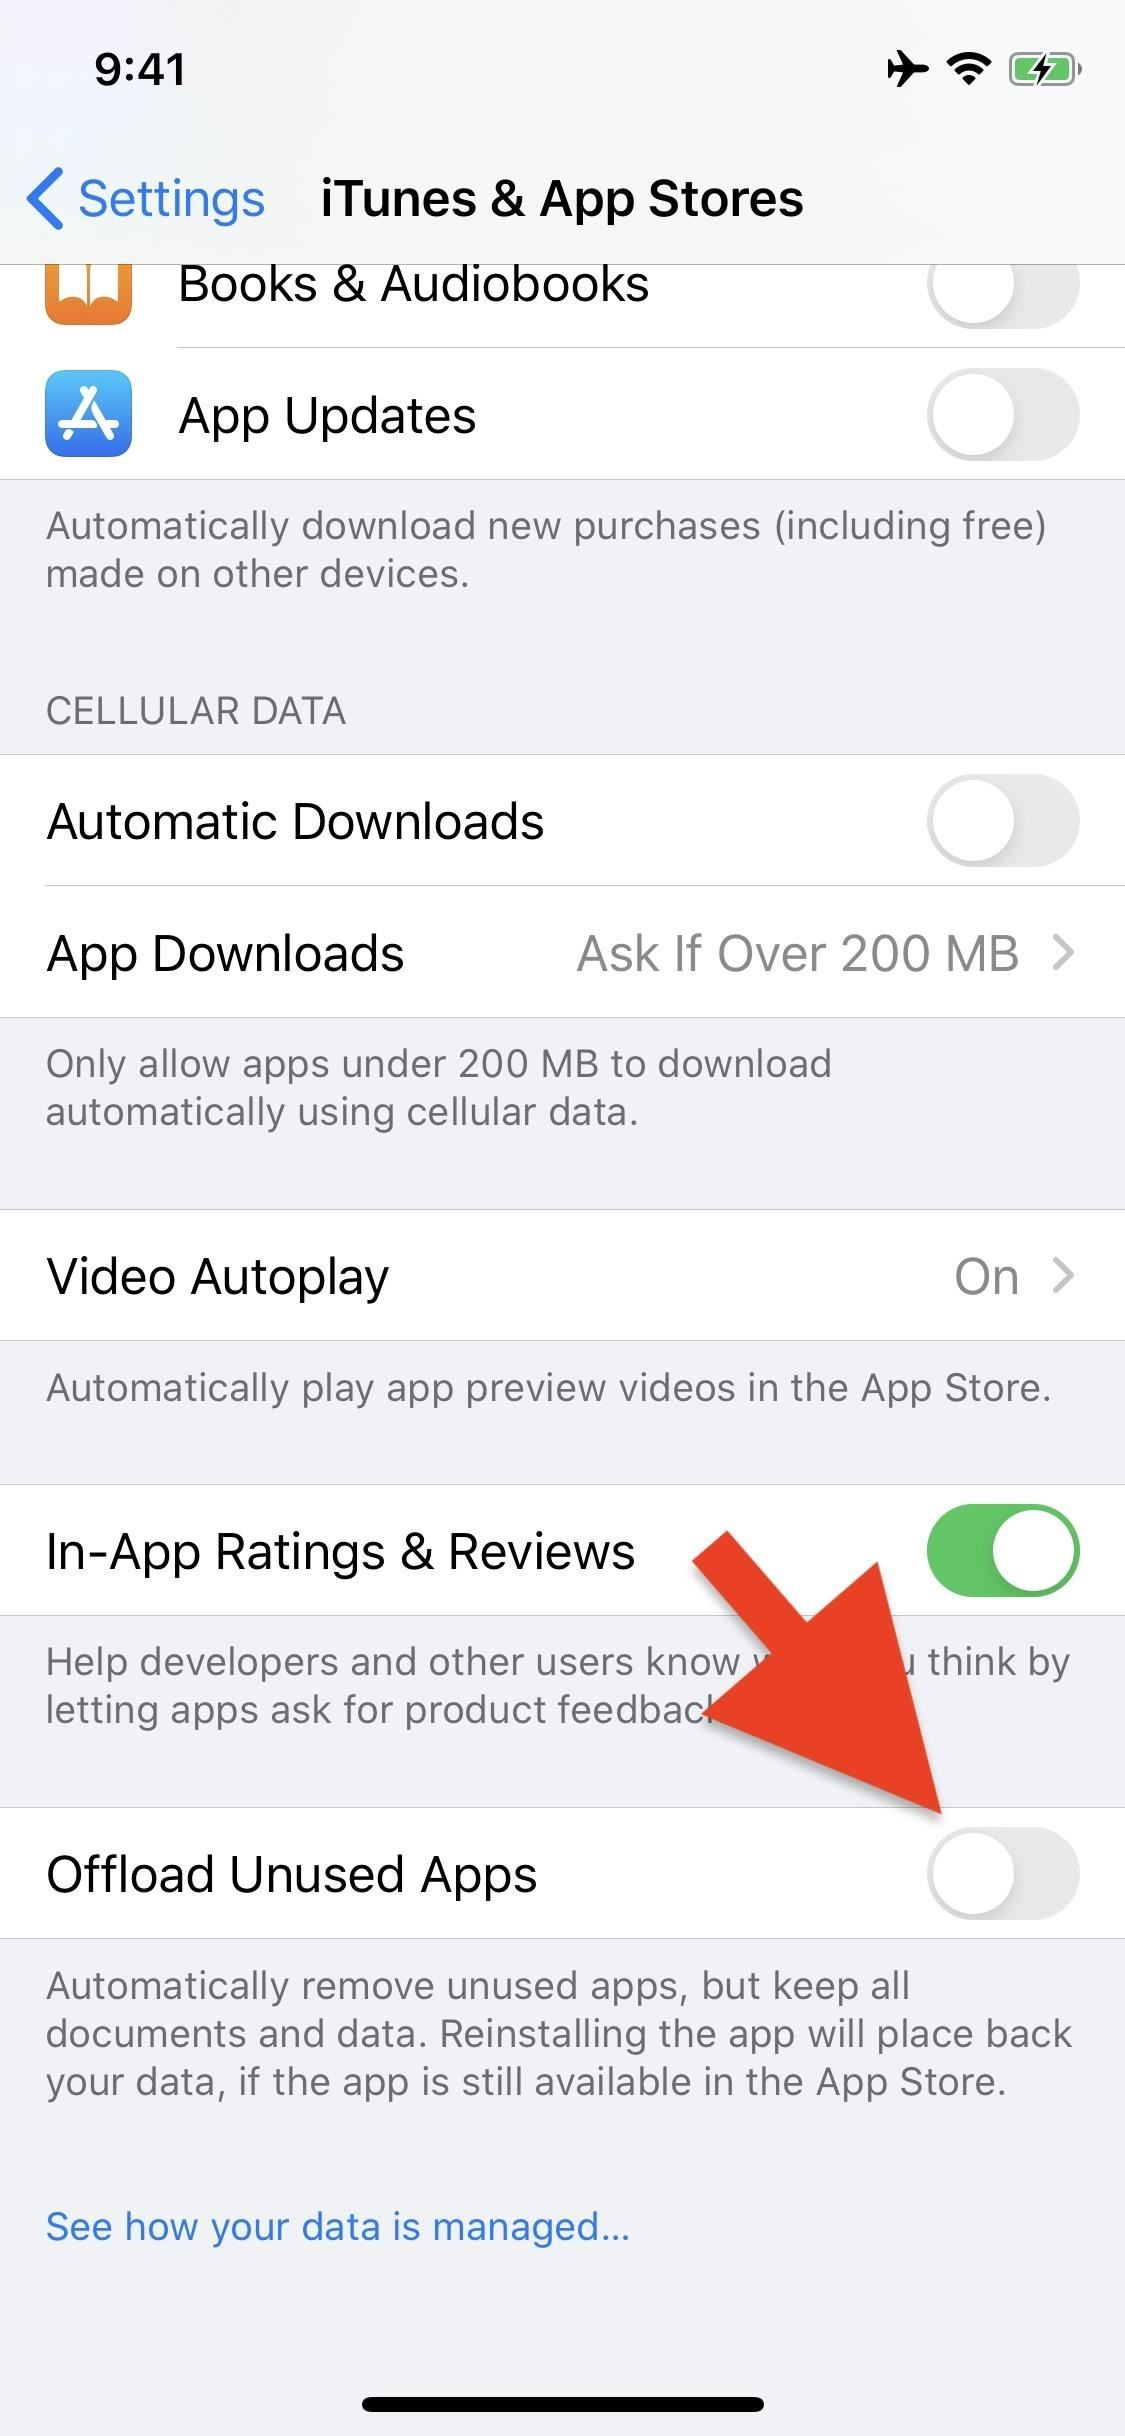 Out of Storage? Your iPhone Can Automatically Delete Apps You Don't Use